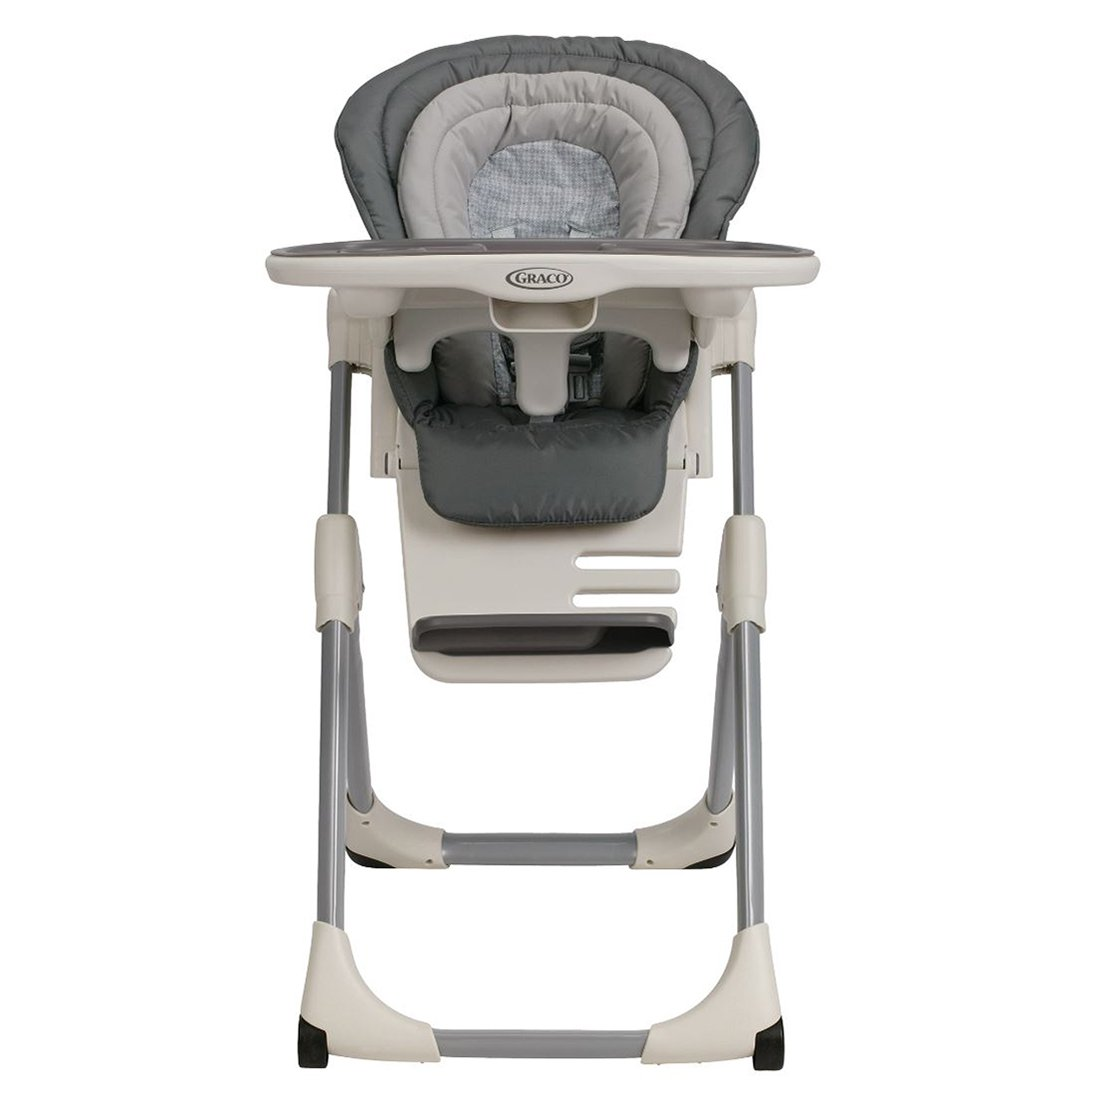 Graco Souffle High Chair, Glacier by Graco